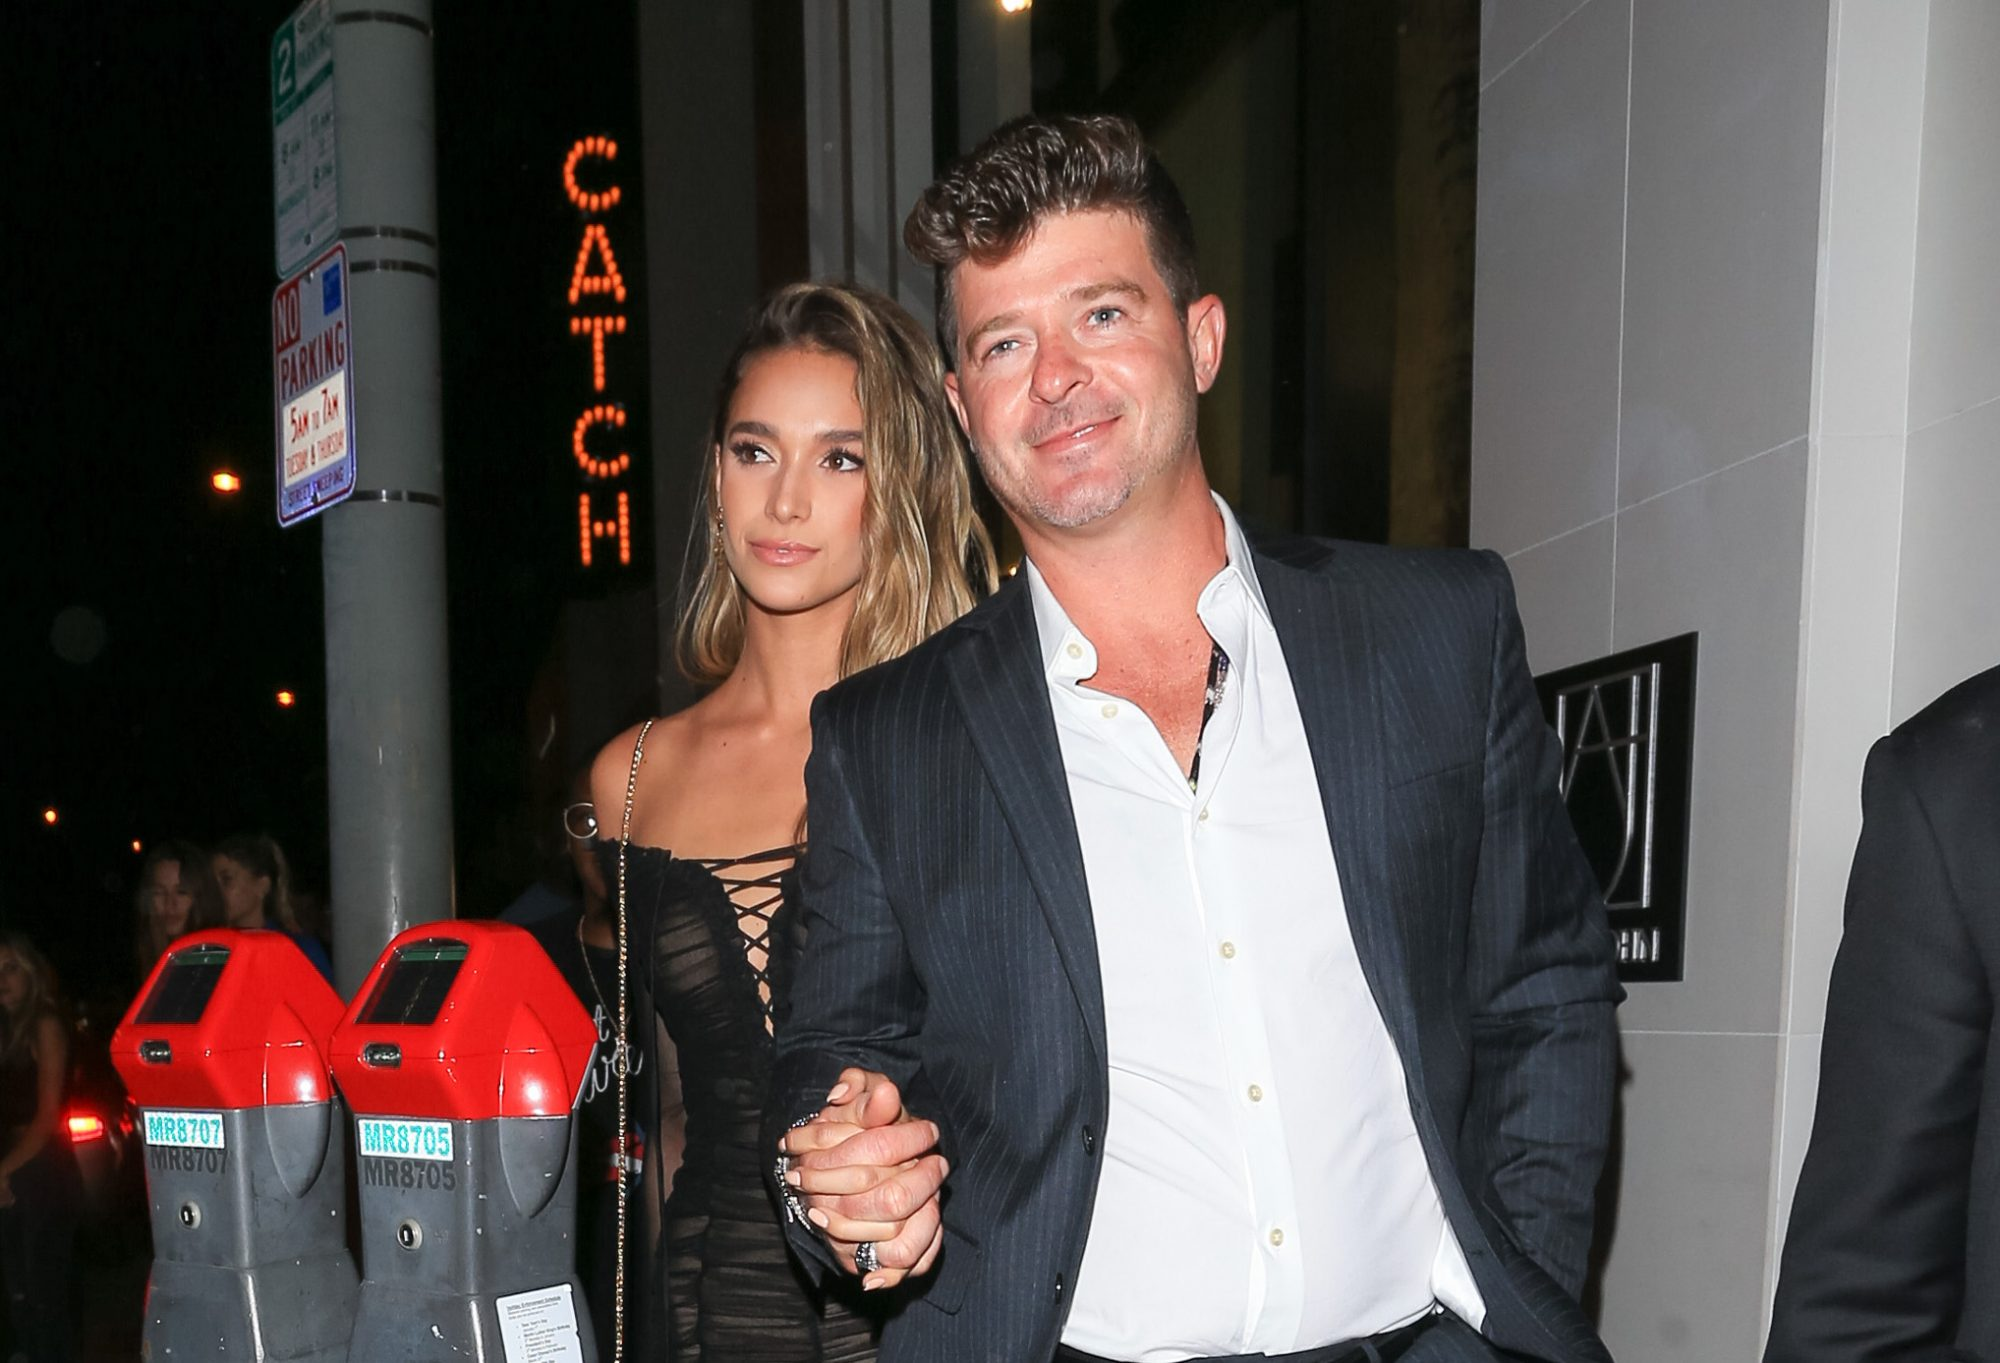 Image of Robin Thicke and April Geary